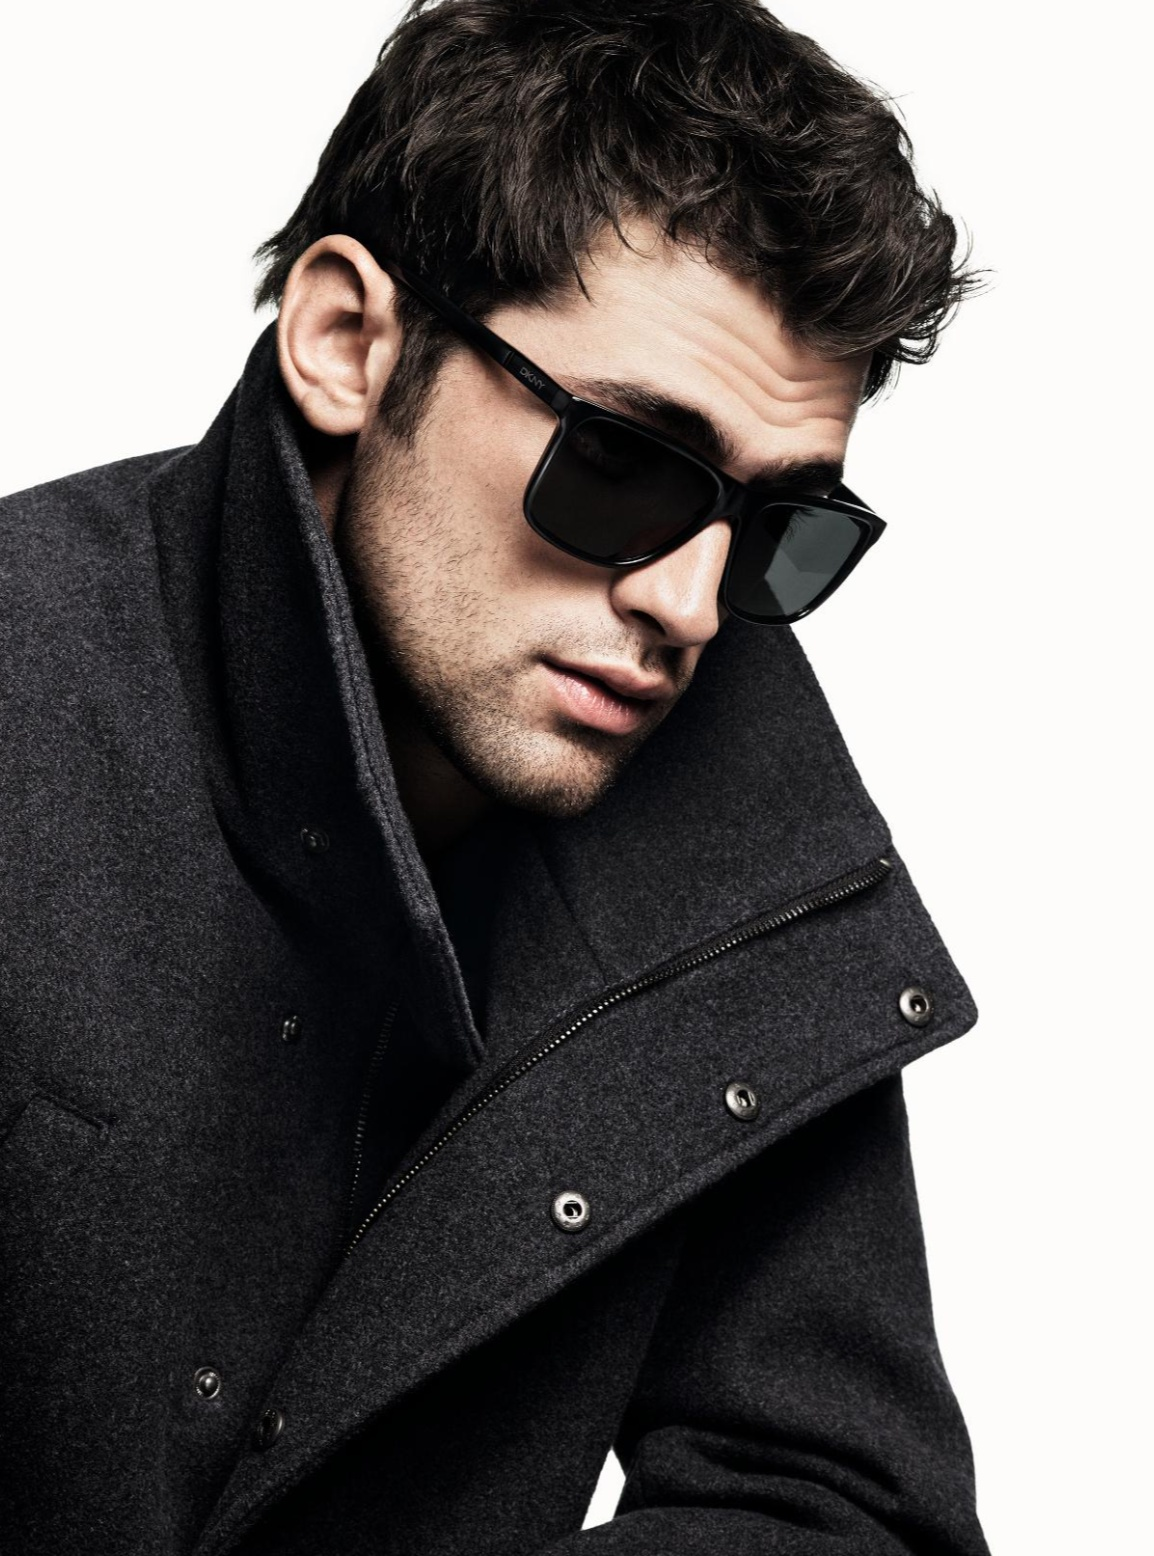 Sean O'Pry Fronts DKNY Campaign